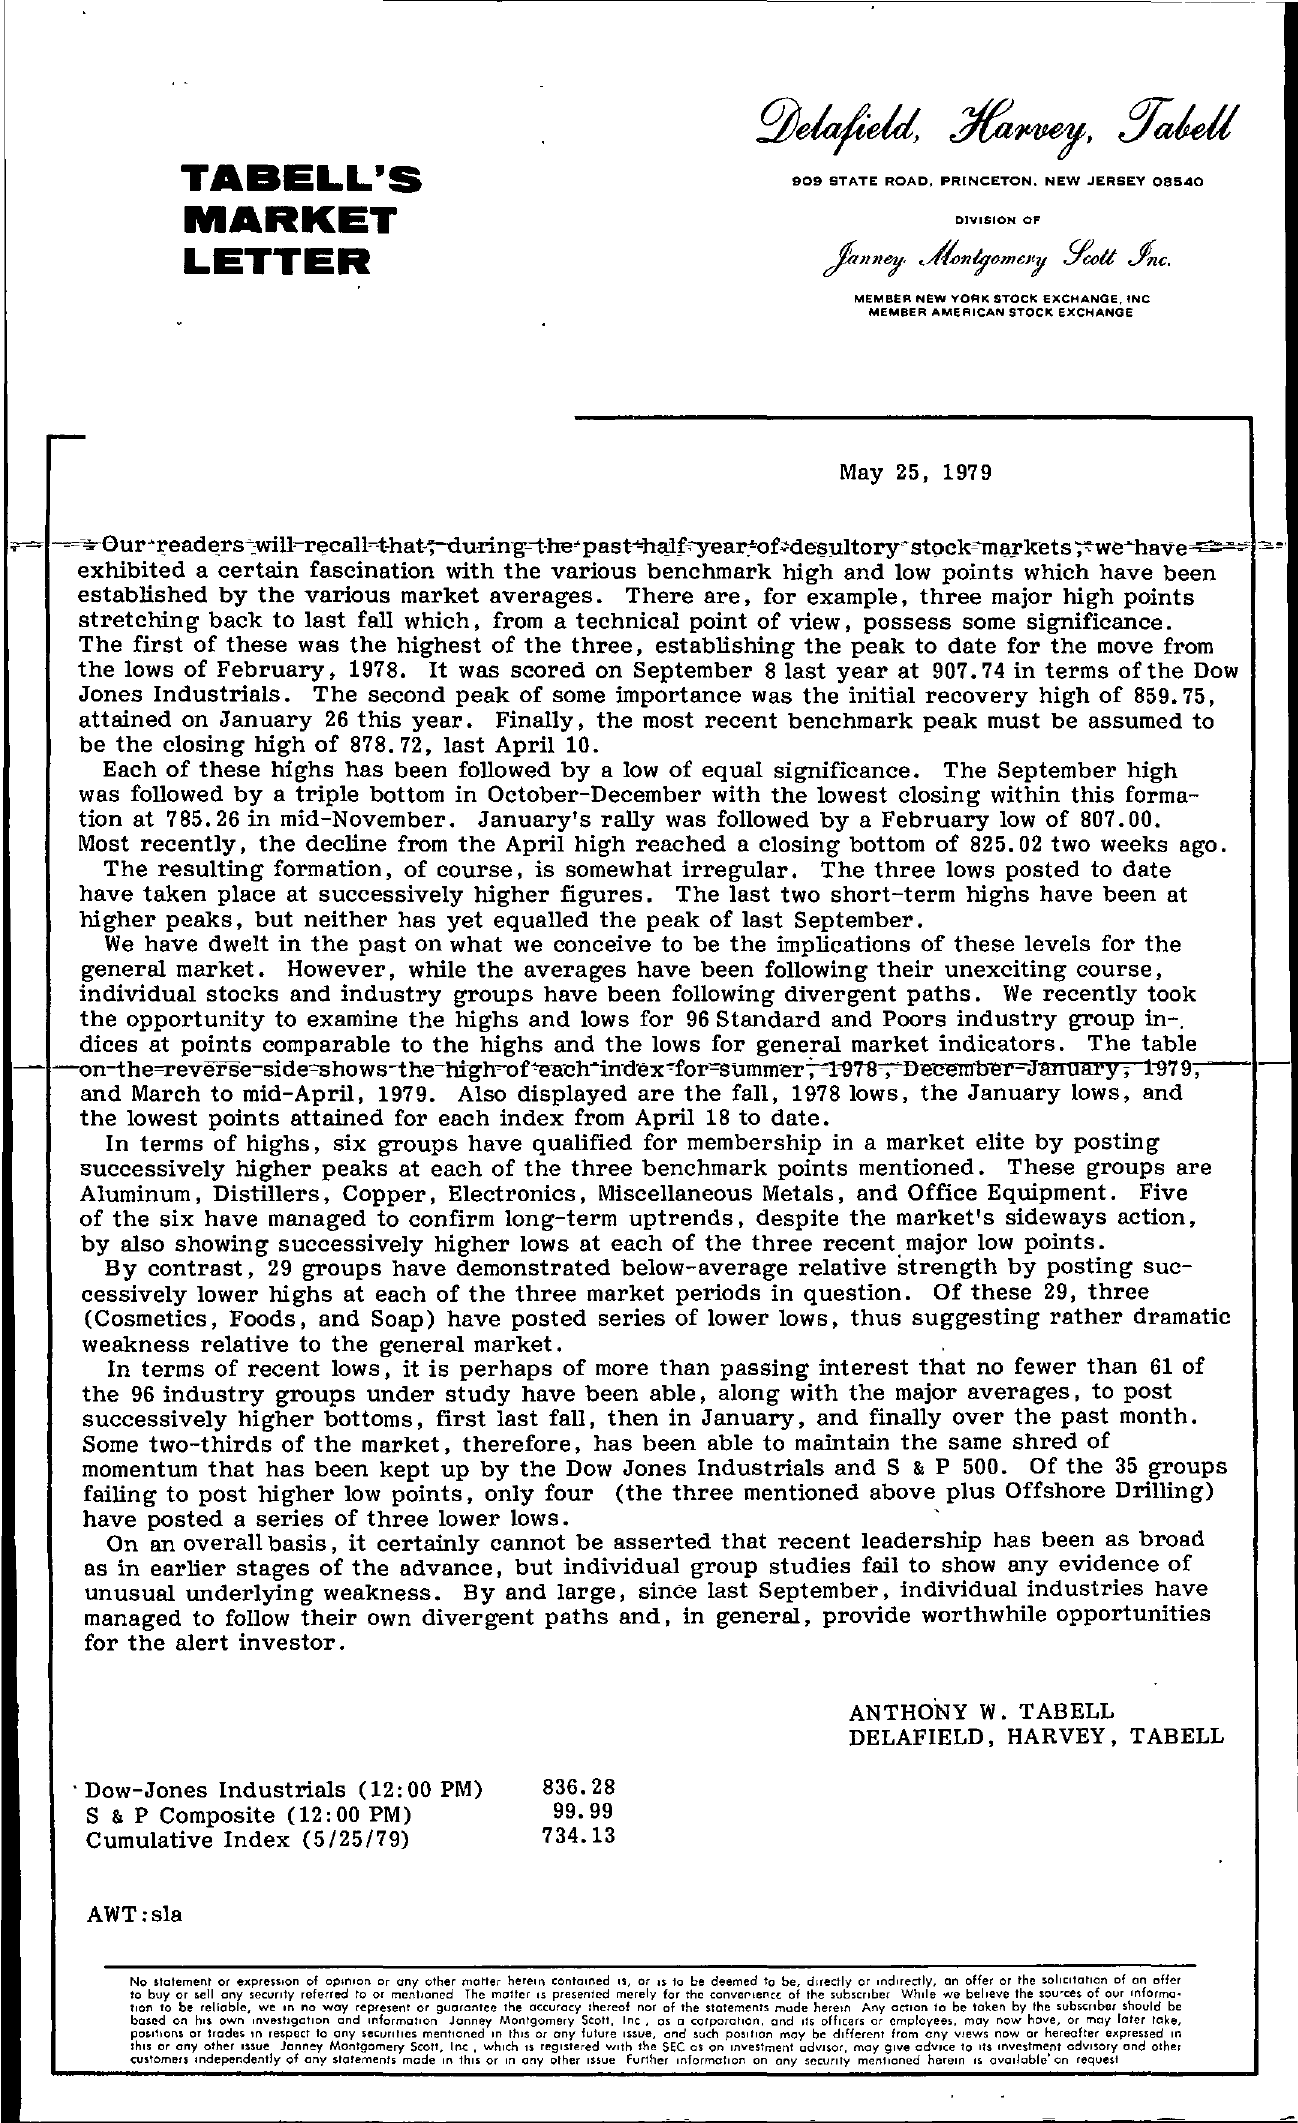 Tabell's Market Letter - May 25, 1979 page 1